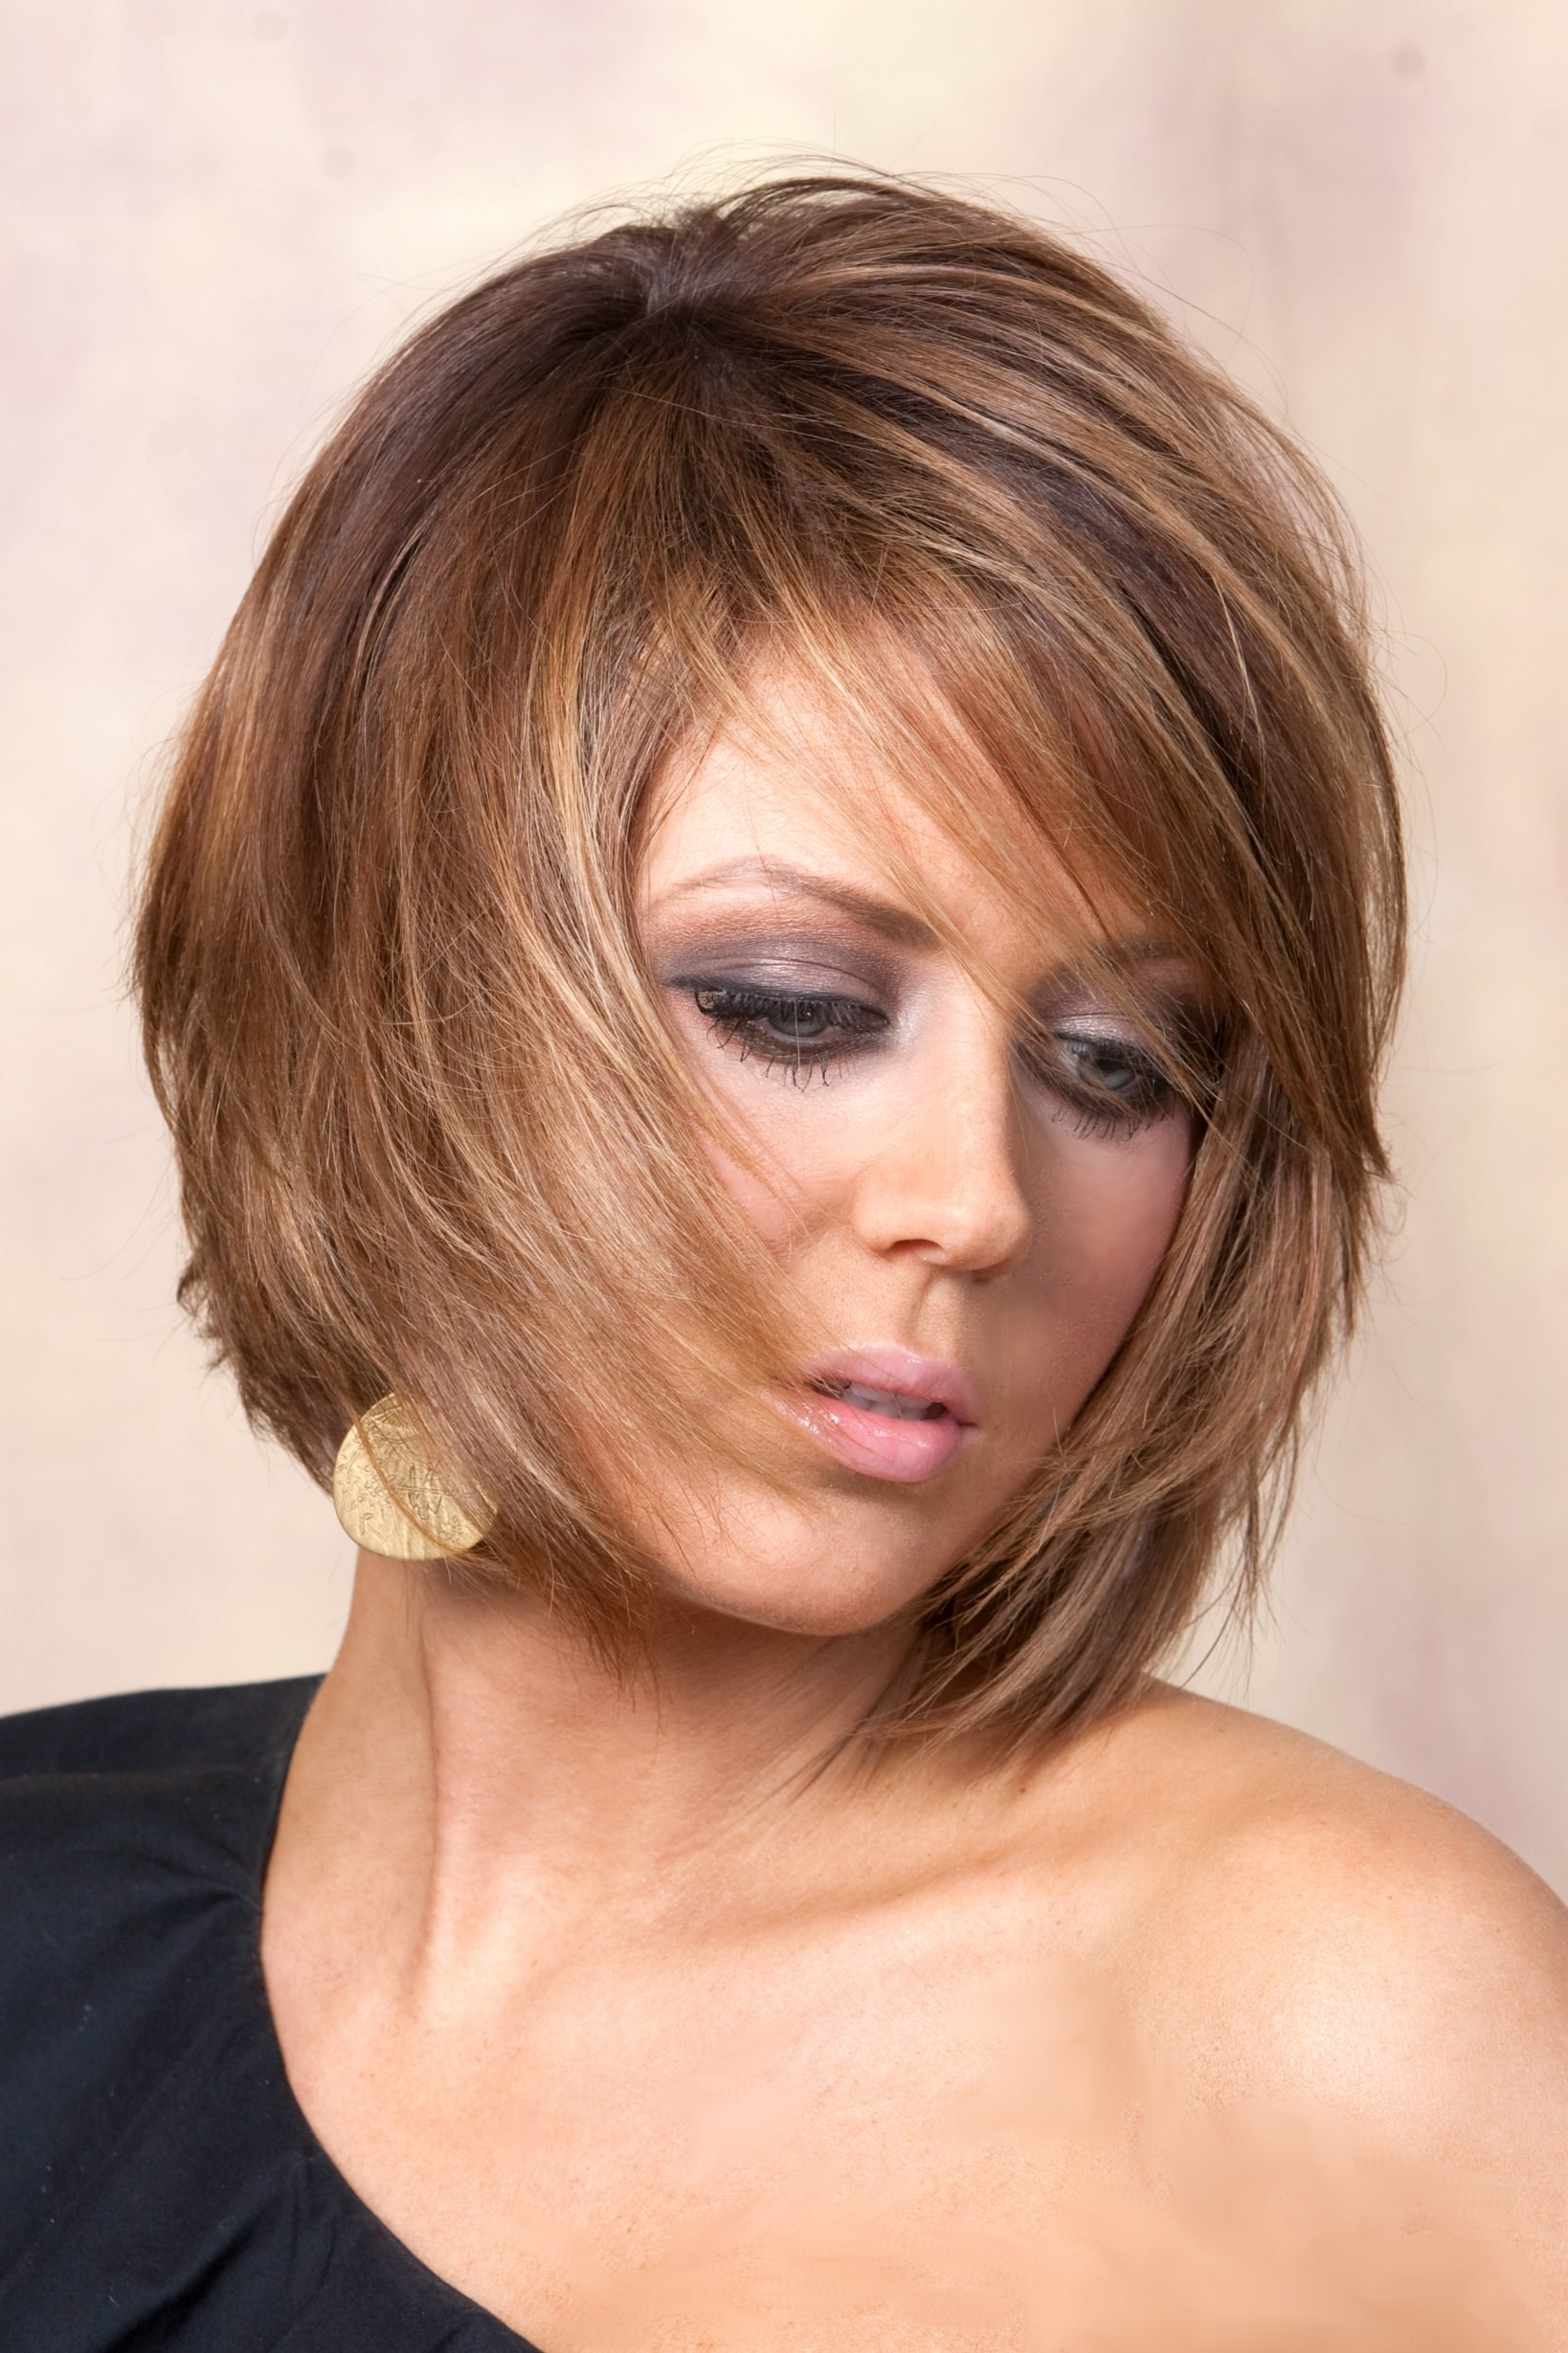 25+ Layered Bob Haircut Ideas, Designs | Hairstyles | Design Trends For Short To Medium Feminine Layered Haircuts (View 3 of 20)